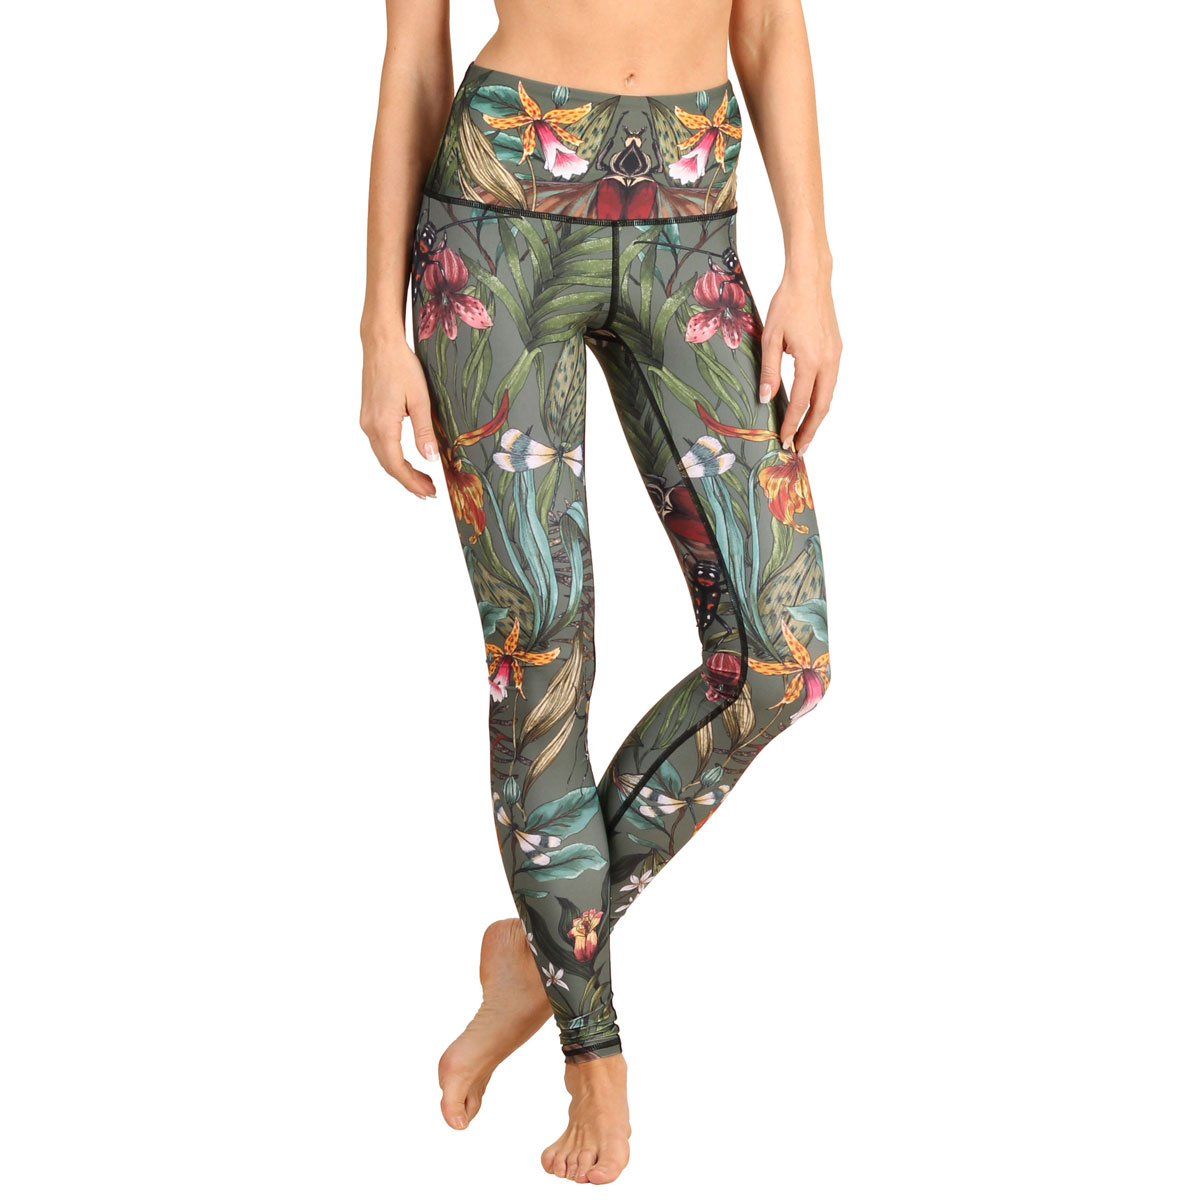 Yoga Democracy Green Thumb Yoga Legging